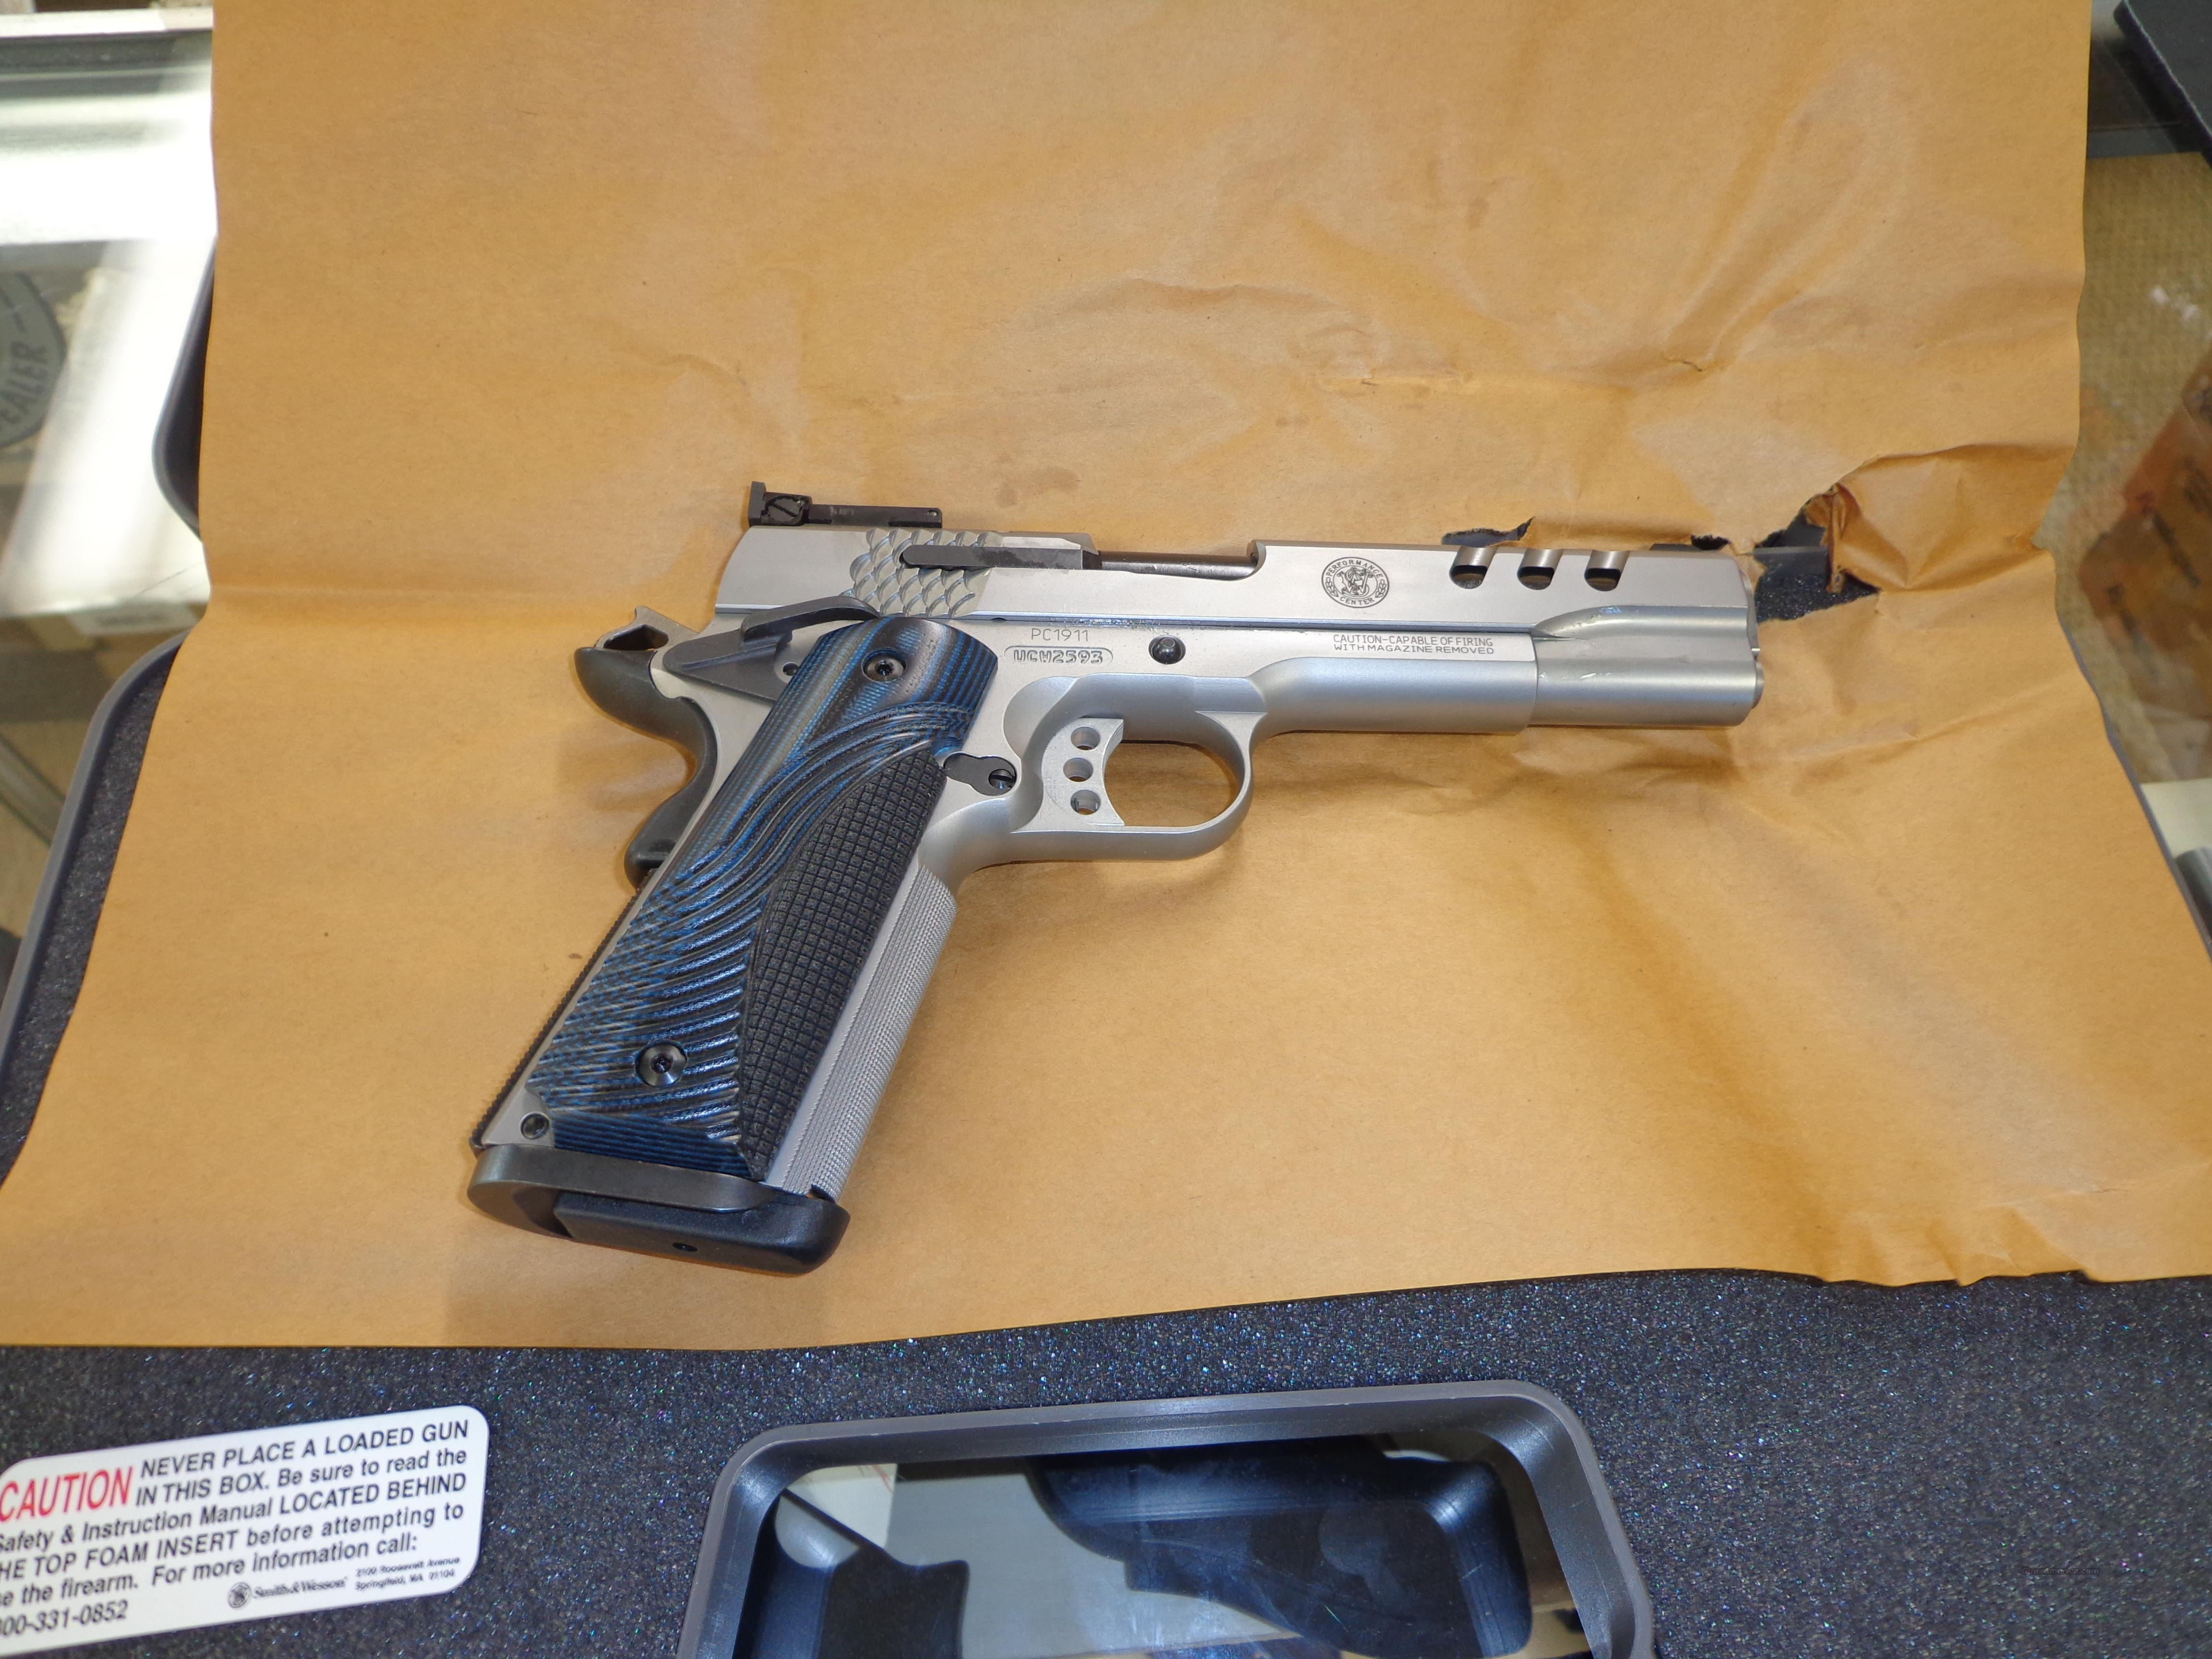 SMITH&WESSON 1911 PERFORMANCE CENTER  Guns > Pistols > Smith & Wesson Pistols - Autos > Steel Frame